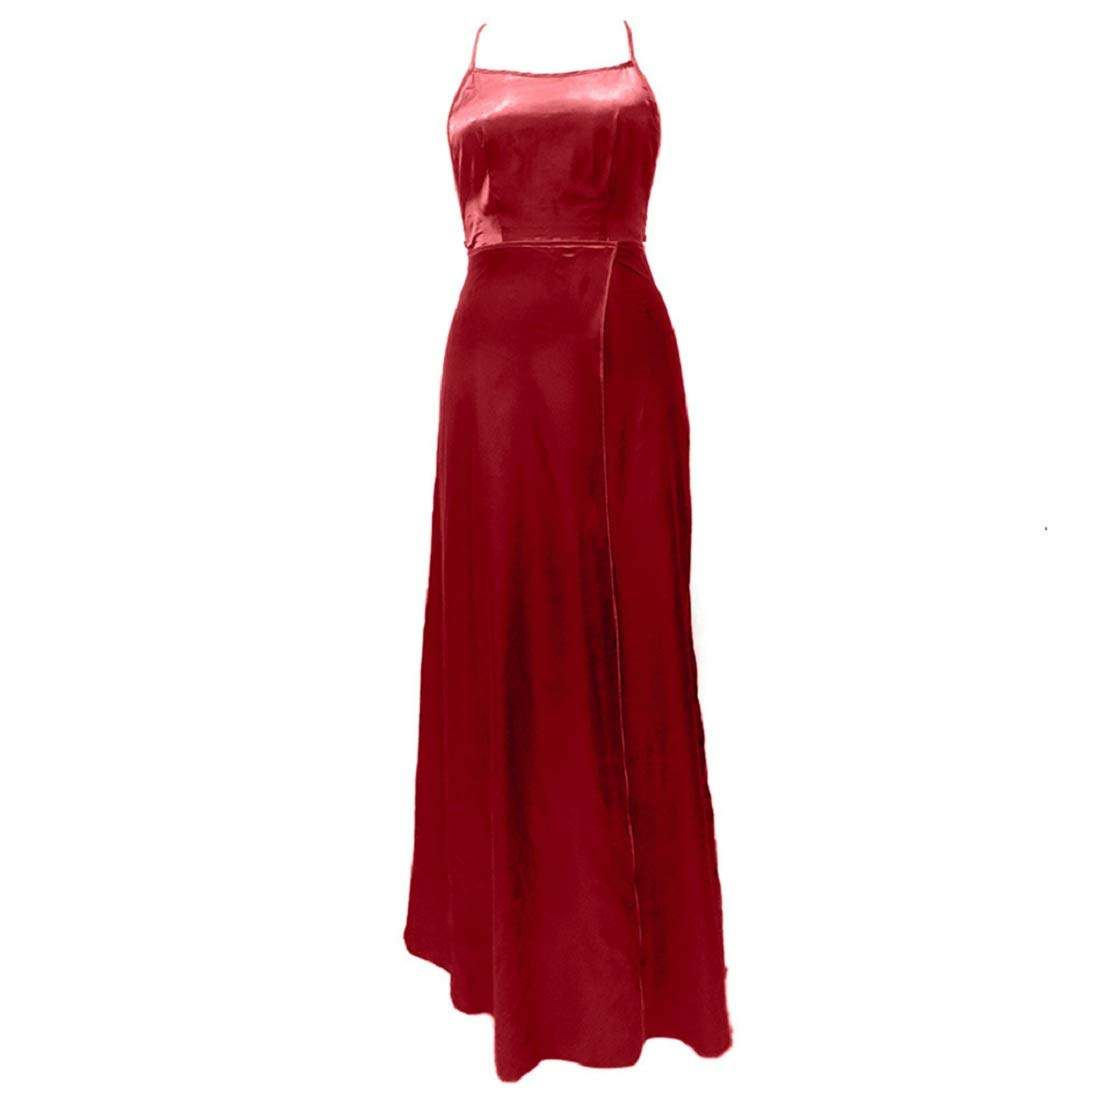 aihihe Women Short Sleeve Loose Plain Casual Long Maxi Dresses with Pockets Red